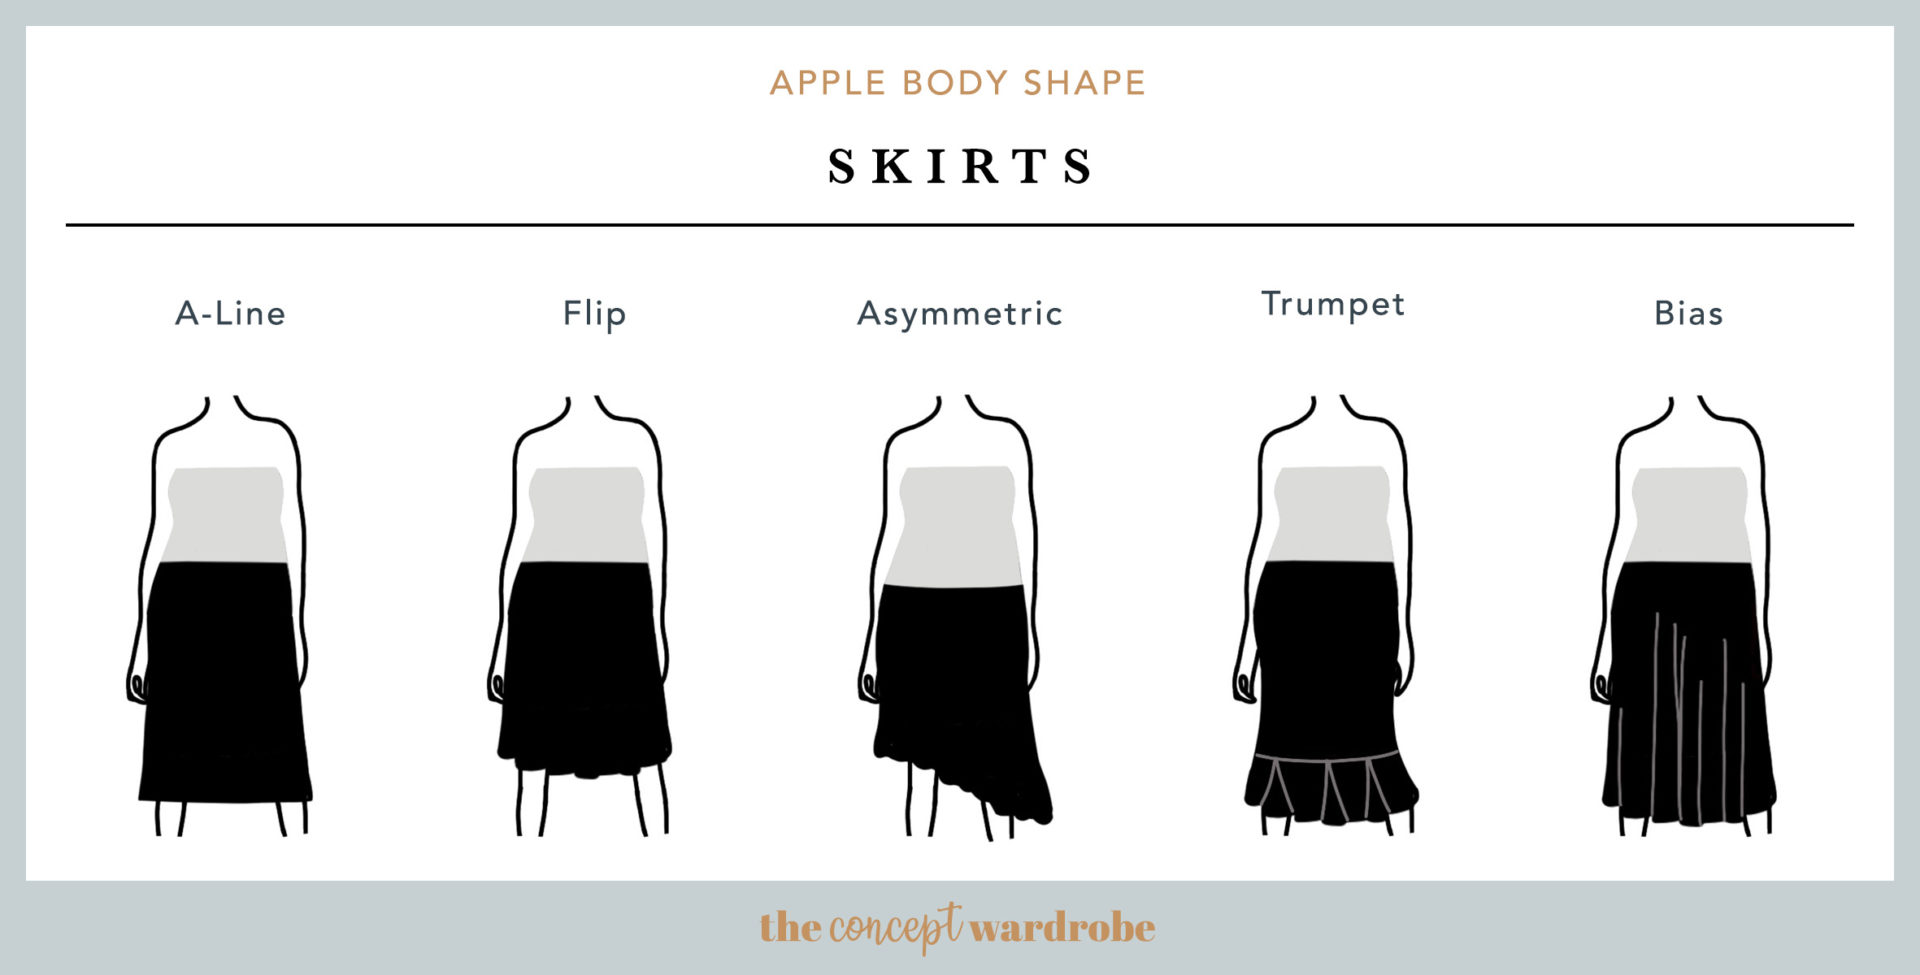 Apple Body Shape Skirts - the concept wardrobe